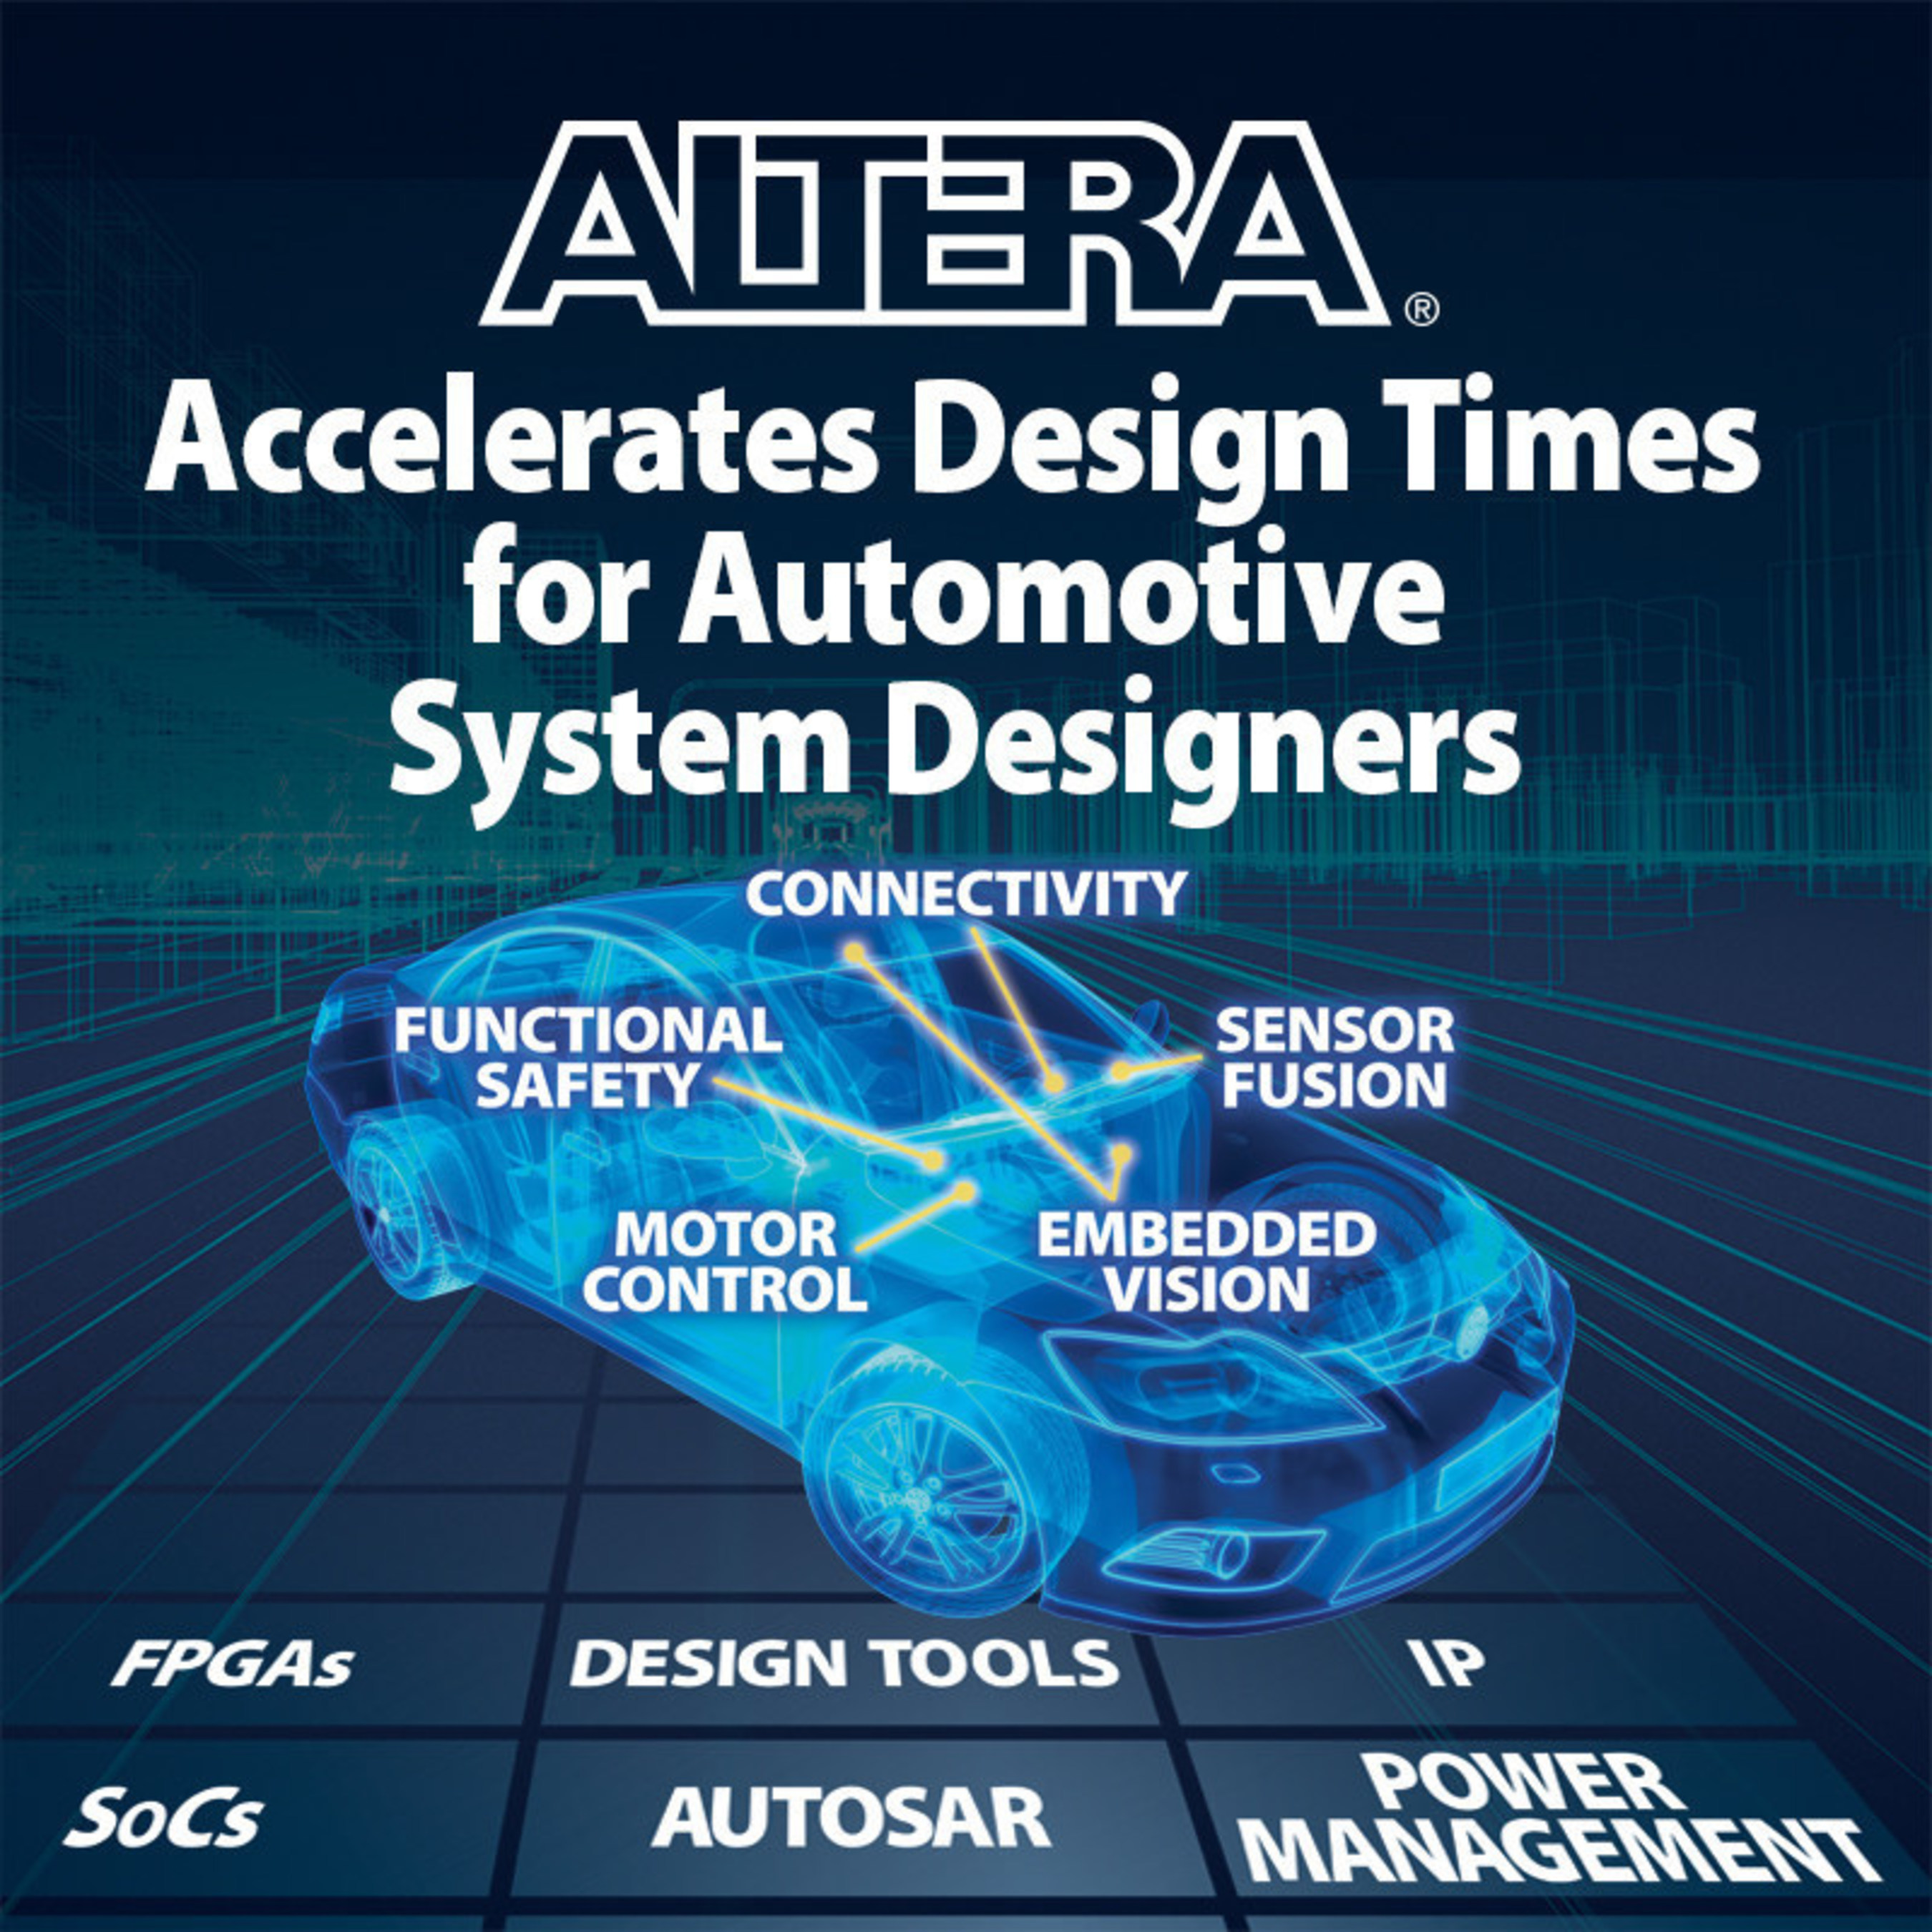 OpenCL, ISO 26262 and AUTOSAR solutions help cut design cycle times in half